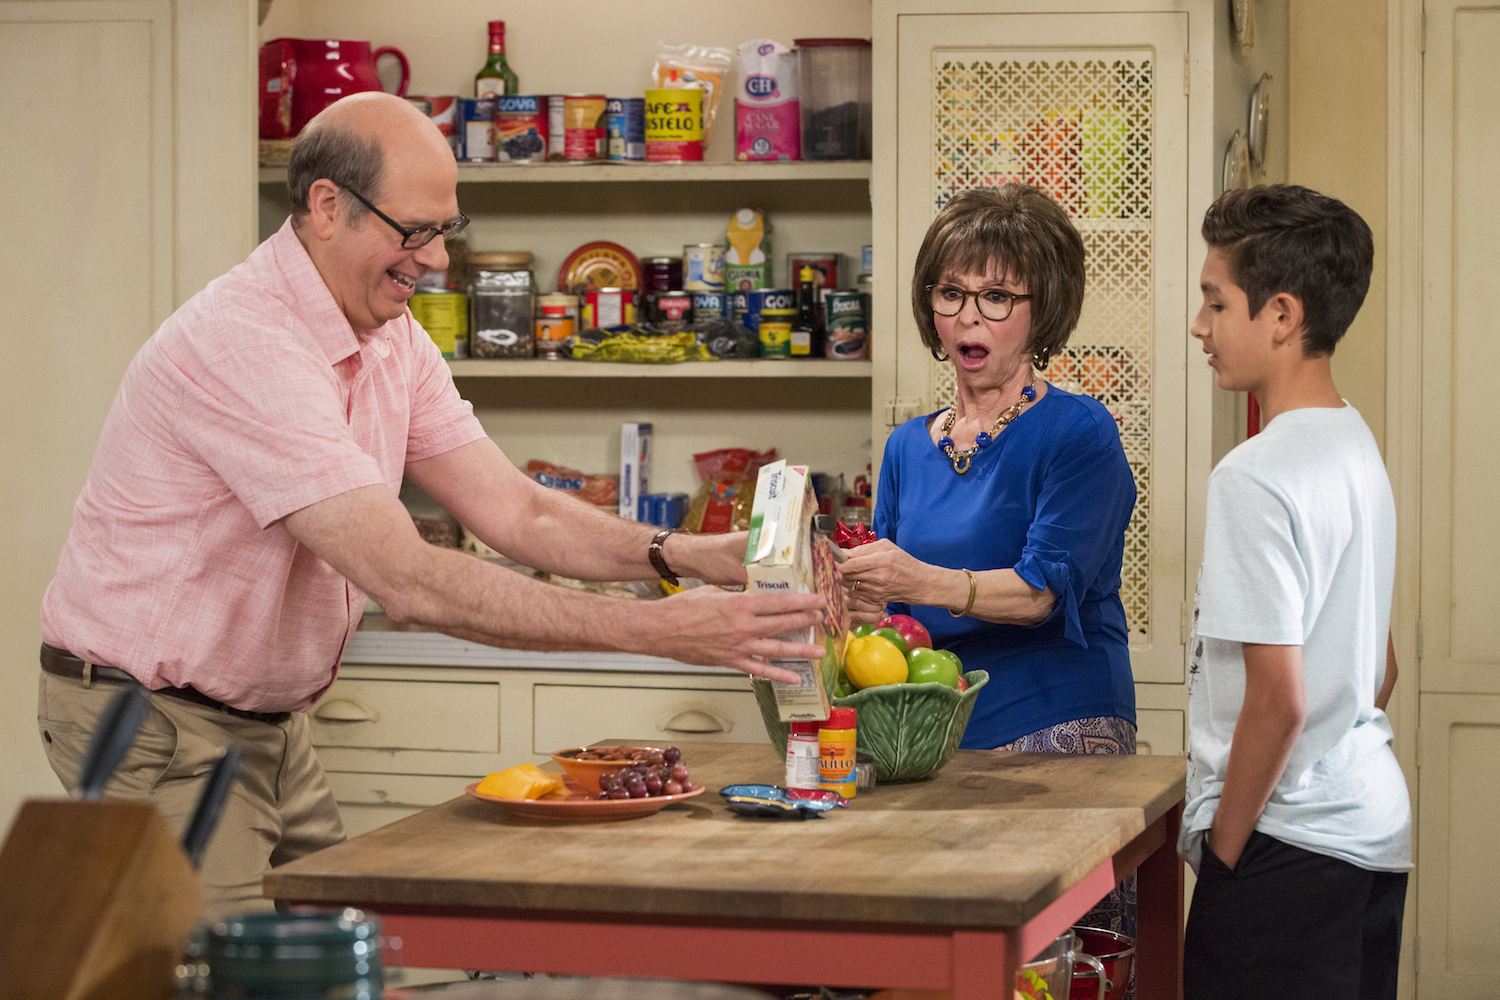 What It's Like to Attend a Live Taping of Netflix's 'One Day at a Time'